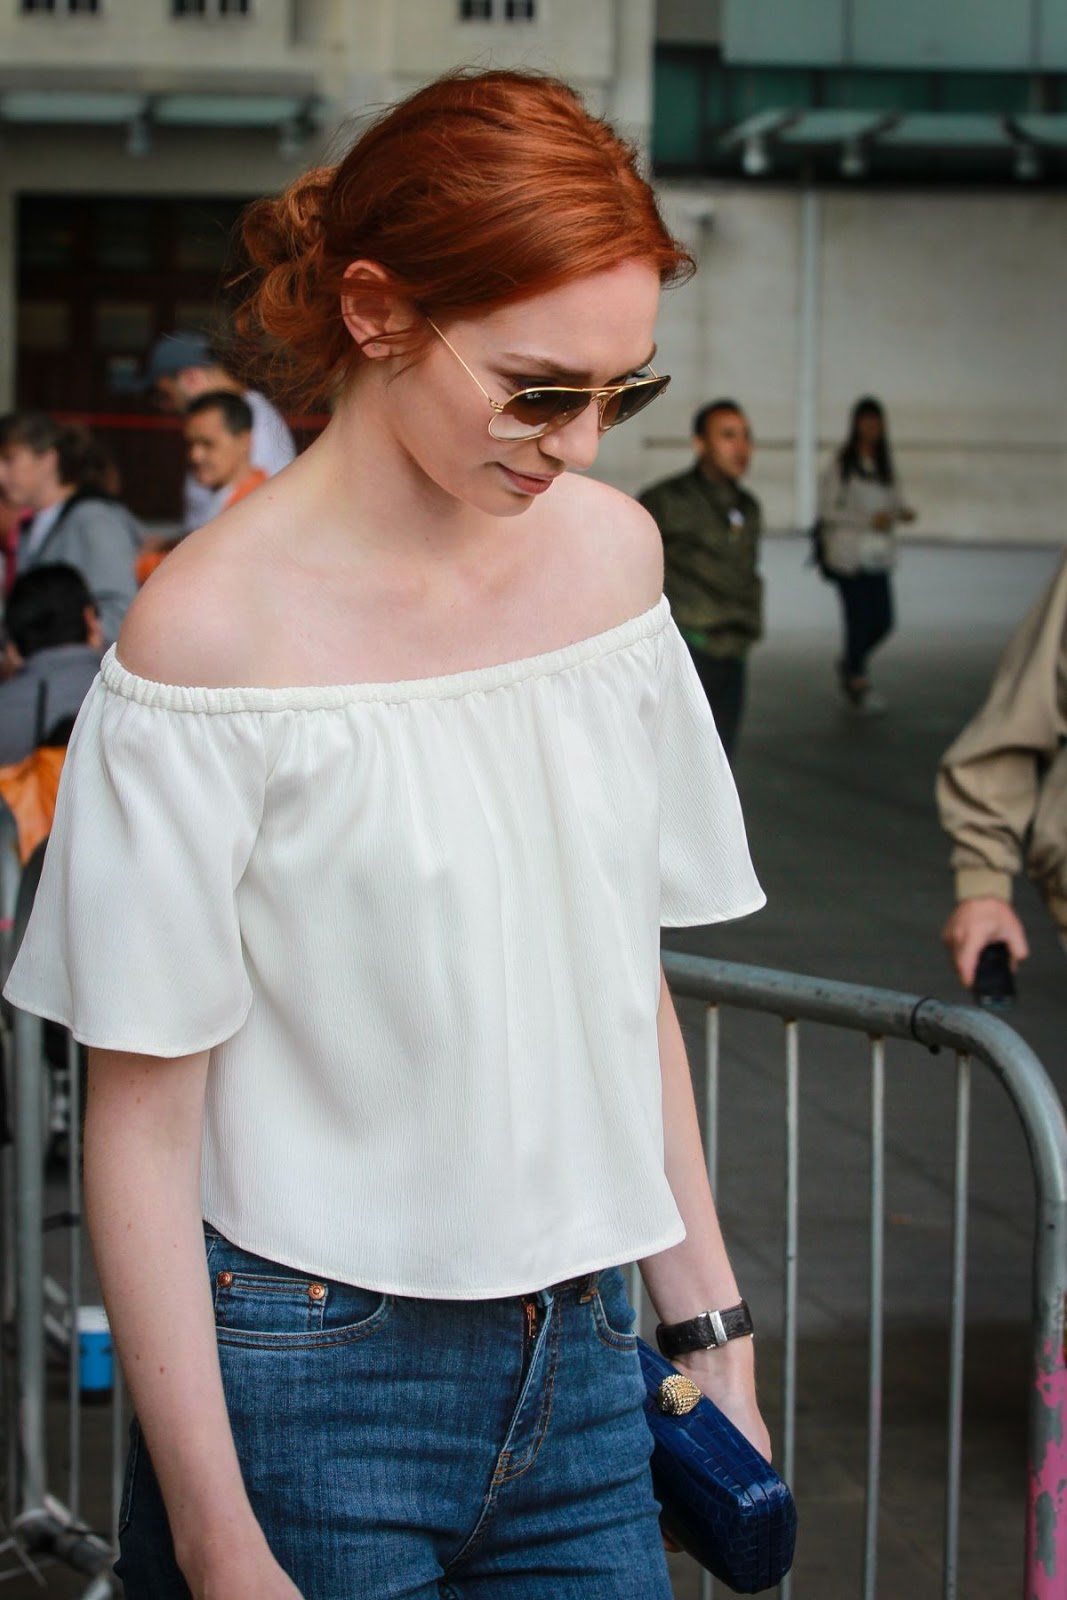 Full 4K Photos of 'Poldark' actress Eleanor Tomlinson at BBC Radio one Studios in London